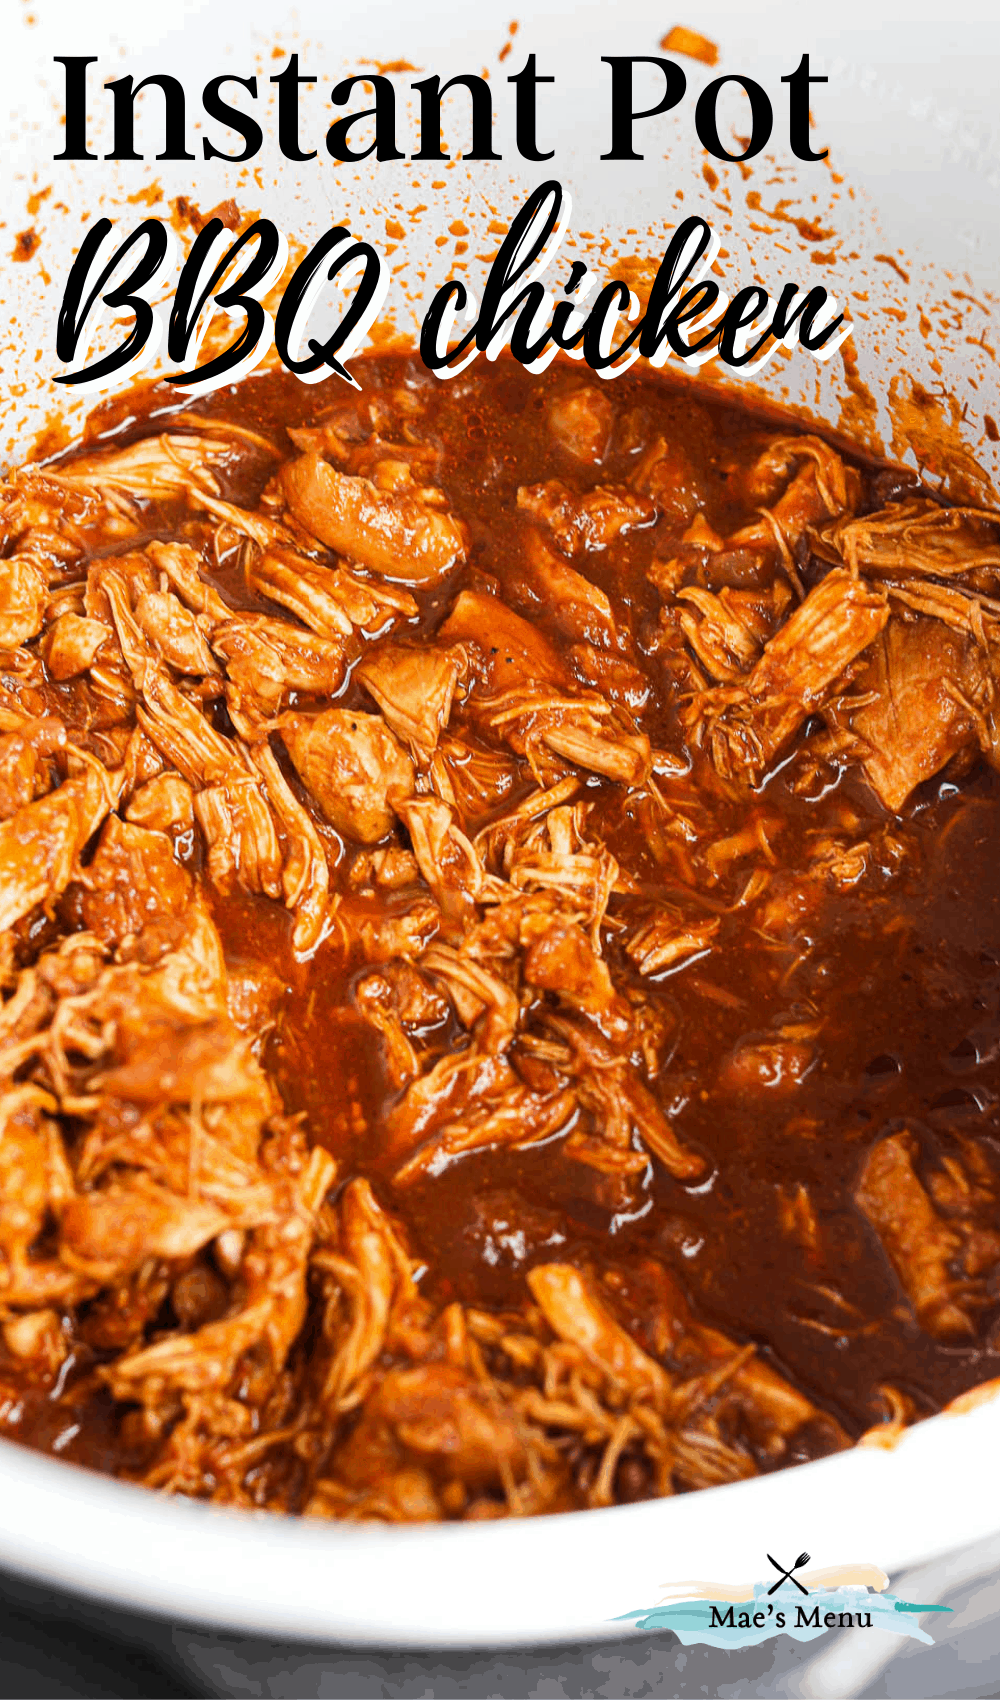 """Instant pot bbq chicken"" with a side angled shot of a pot of the shredded chicken"